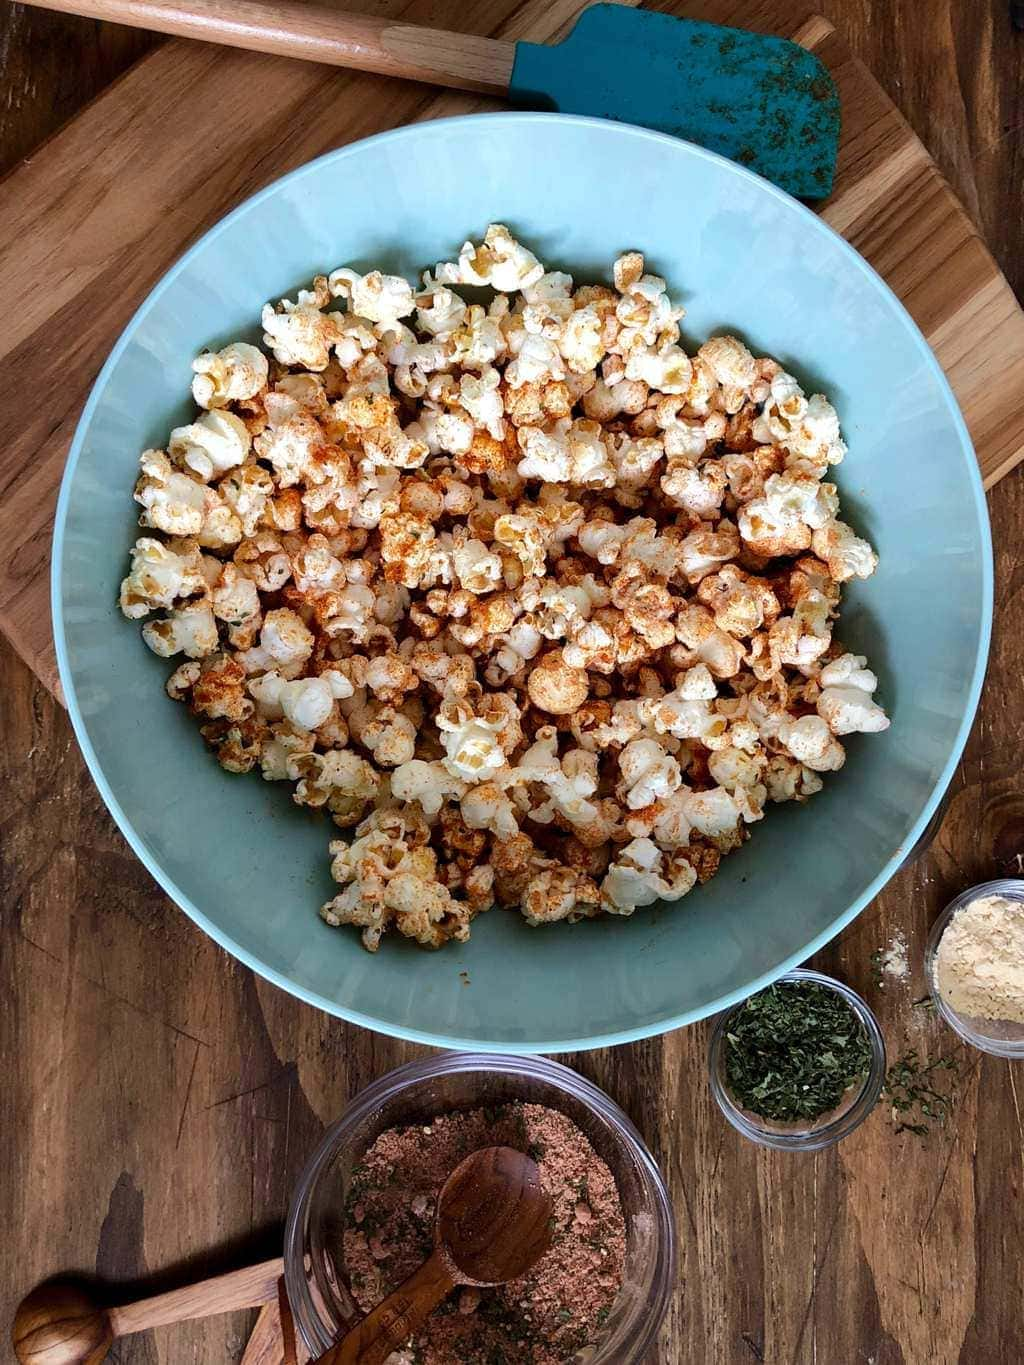 BBQ Popcorn in a blue bowl ready for snacking